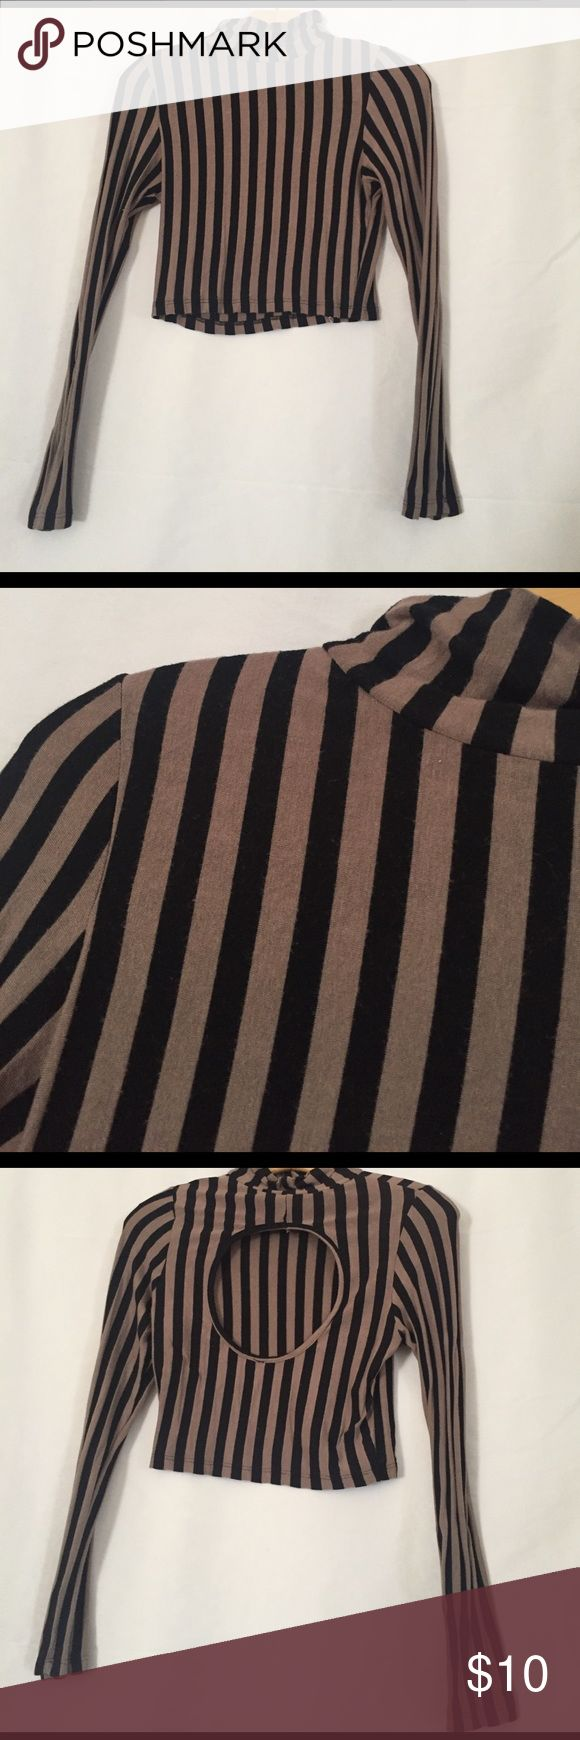 Brown and black striped crop top mock turtleneck Light brown and black striped mock turtleneck crop top with circular cut out on back long sleeve Tops Crop Tops